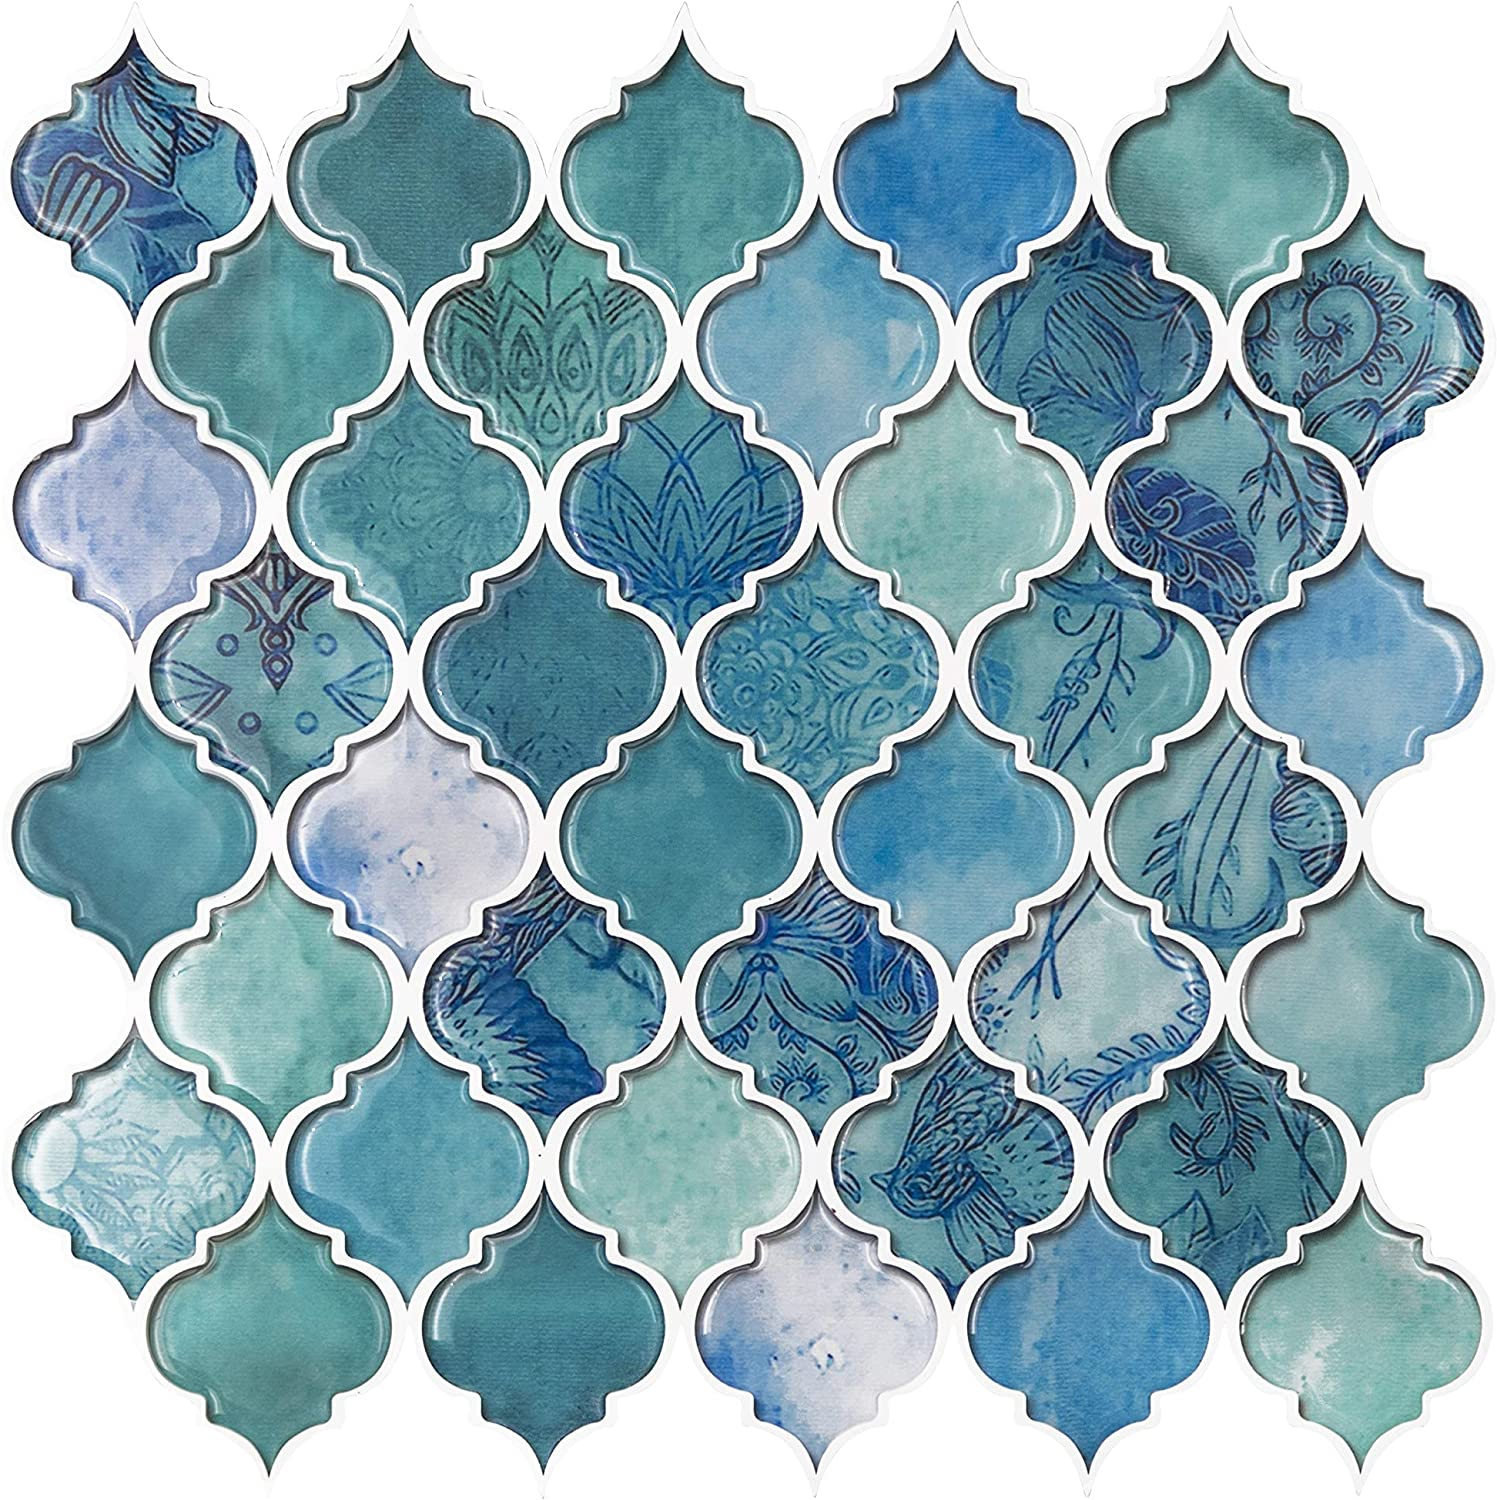 - Amazon.com: VIVID TREE Teal Arabesque Peel And Stick Tile Adhesive